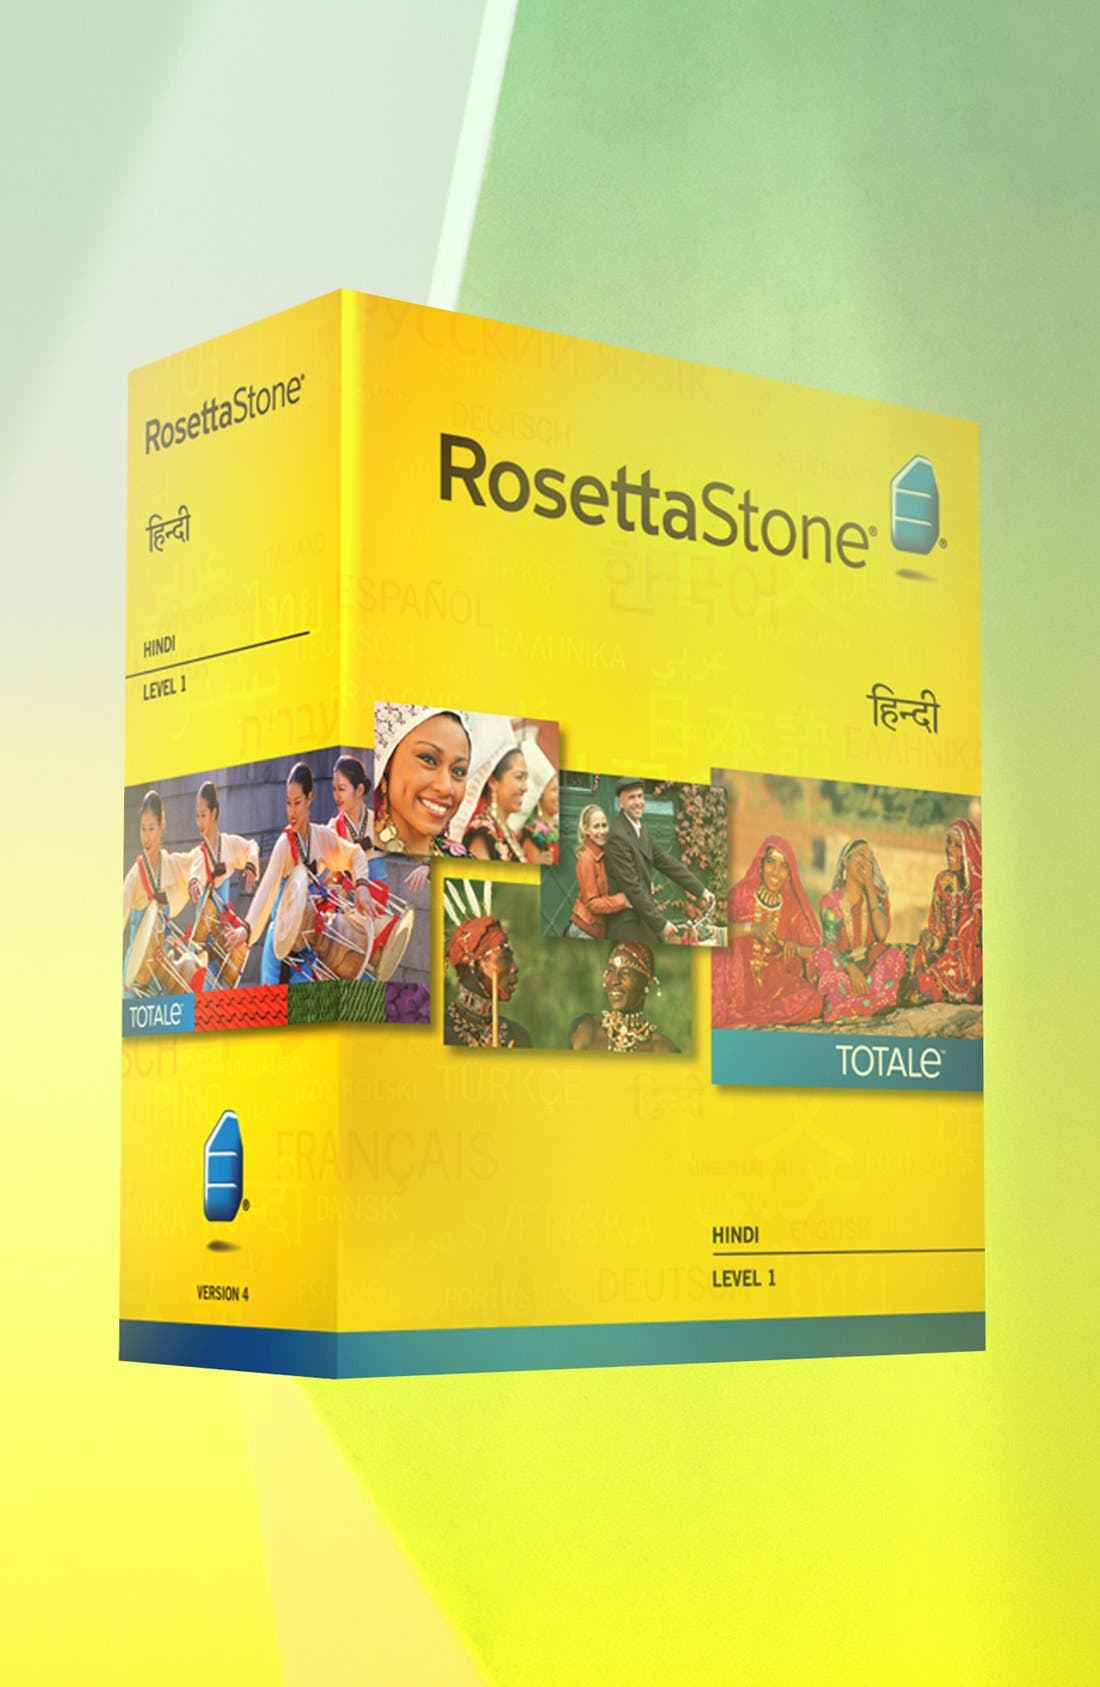 Alternate Image 1 Selected - Rosetta Stone 'Hindi Level 1' Interactive Language Learning Software